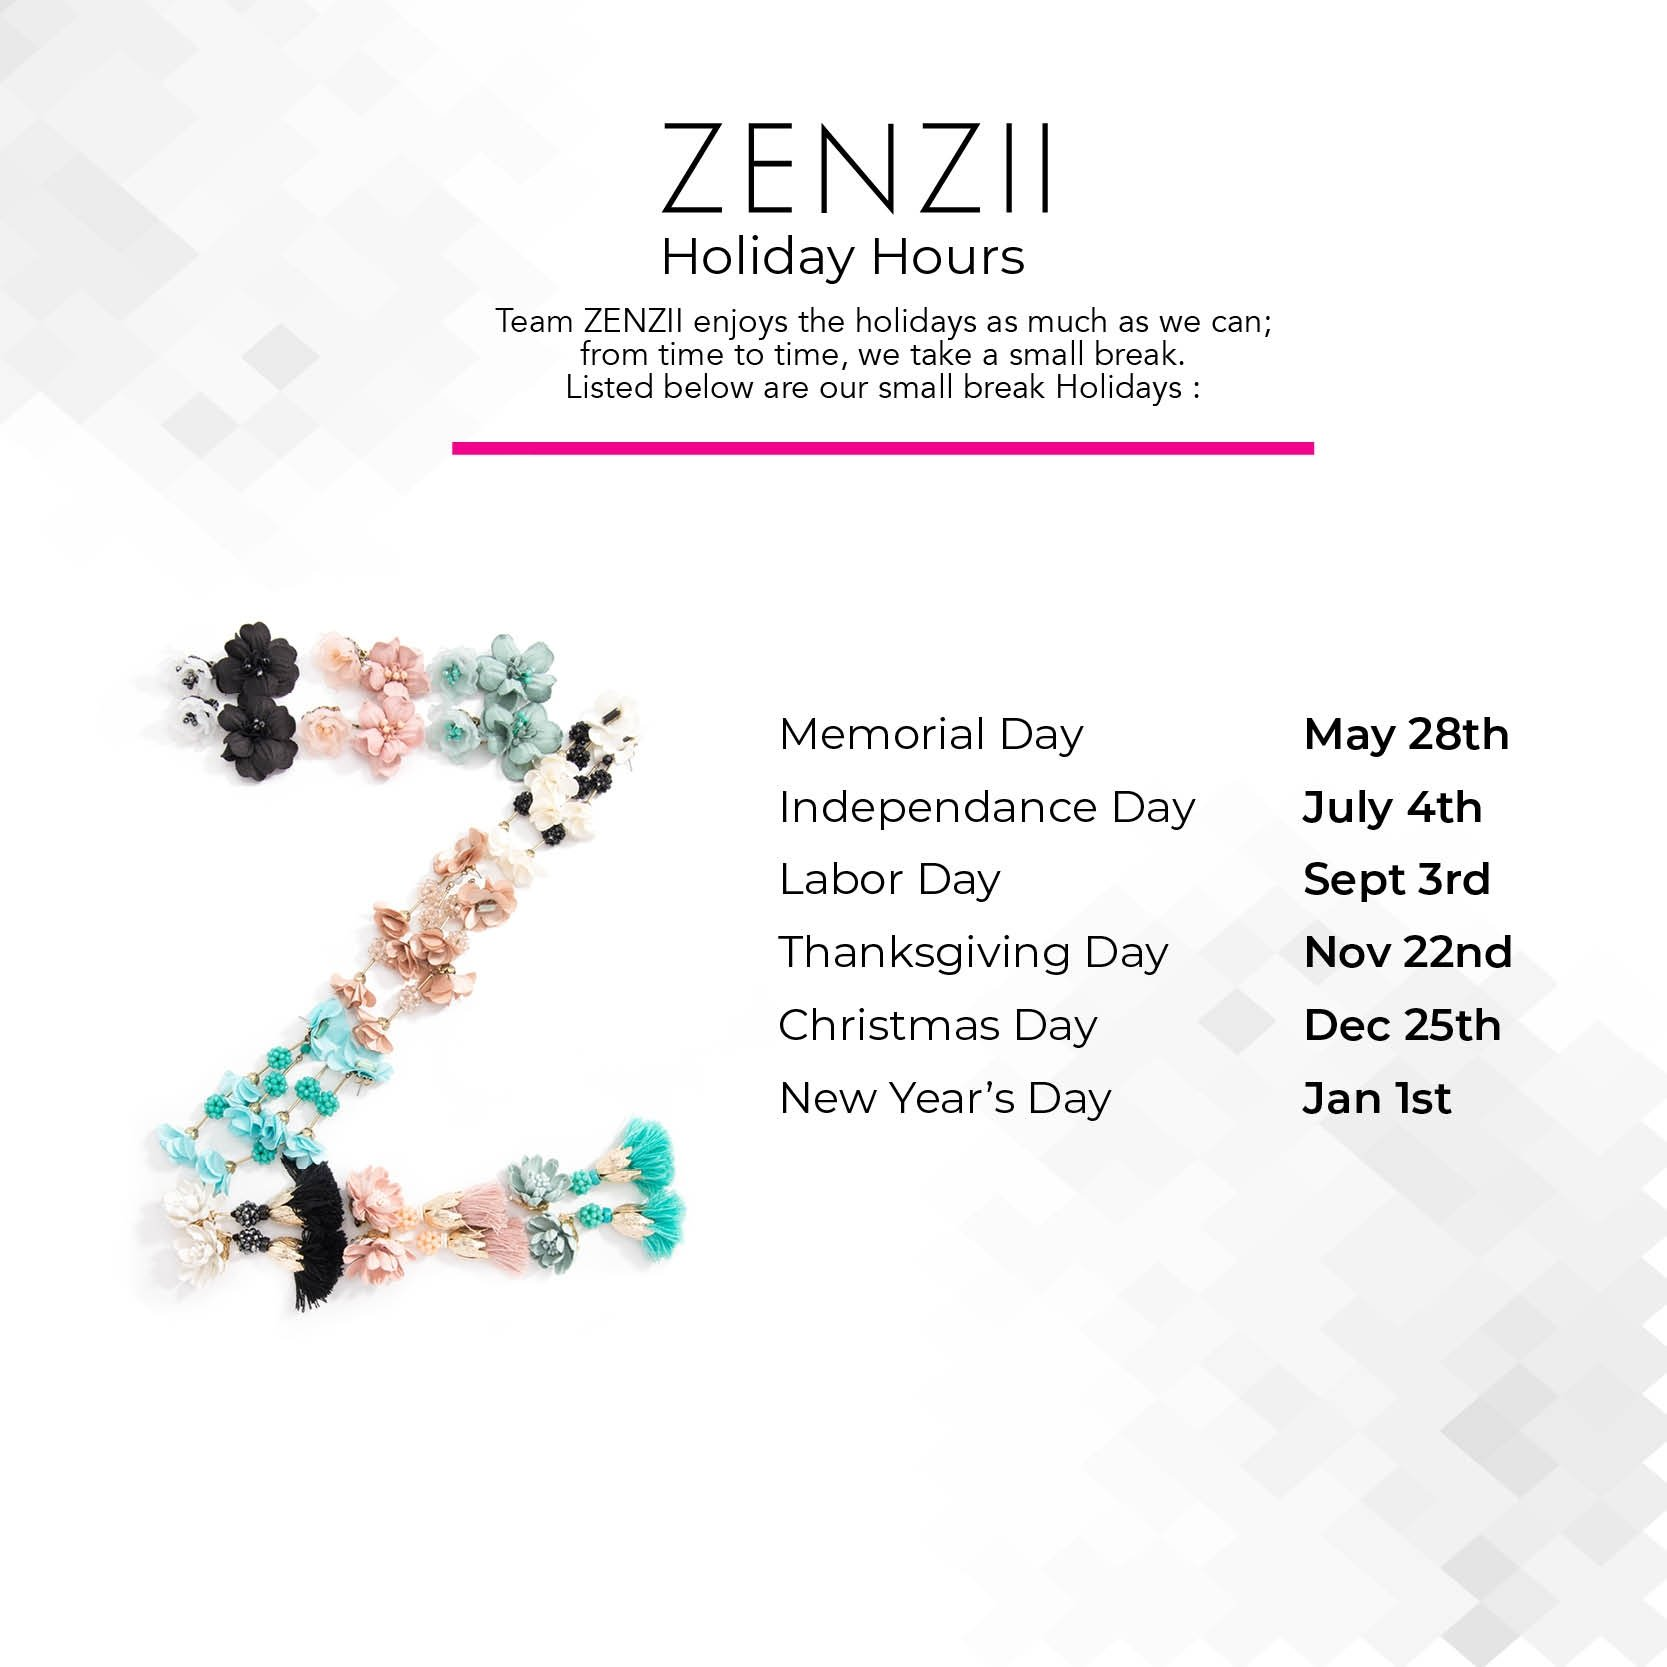 Team ZENZII enjoys the holidays as much as we can; from time to time, we take a small break. Listed below are our holiday breaks.